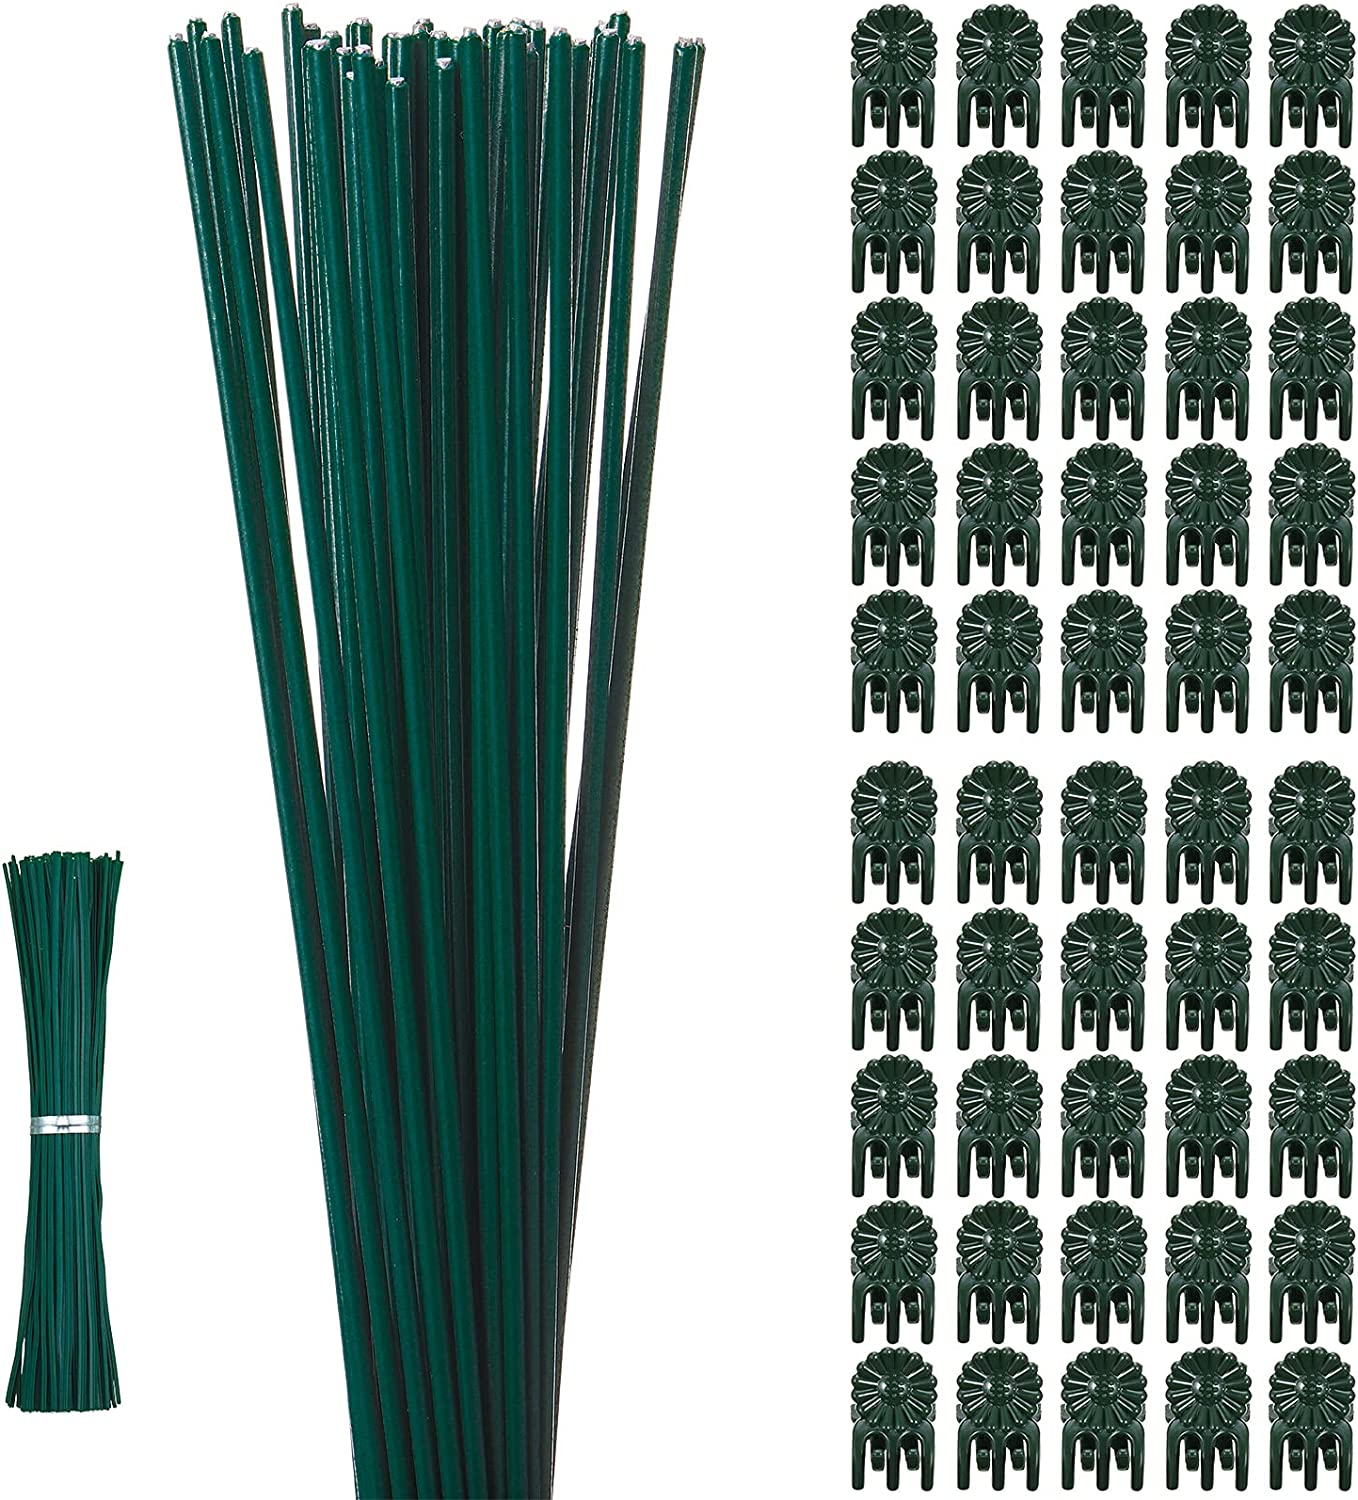 50 Pieces Plastic Coated Iron Wire Inch 15.9 Stem Single Over item handling ☆ S Sale Plant